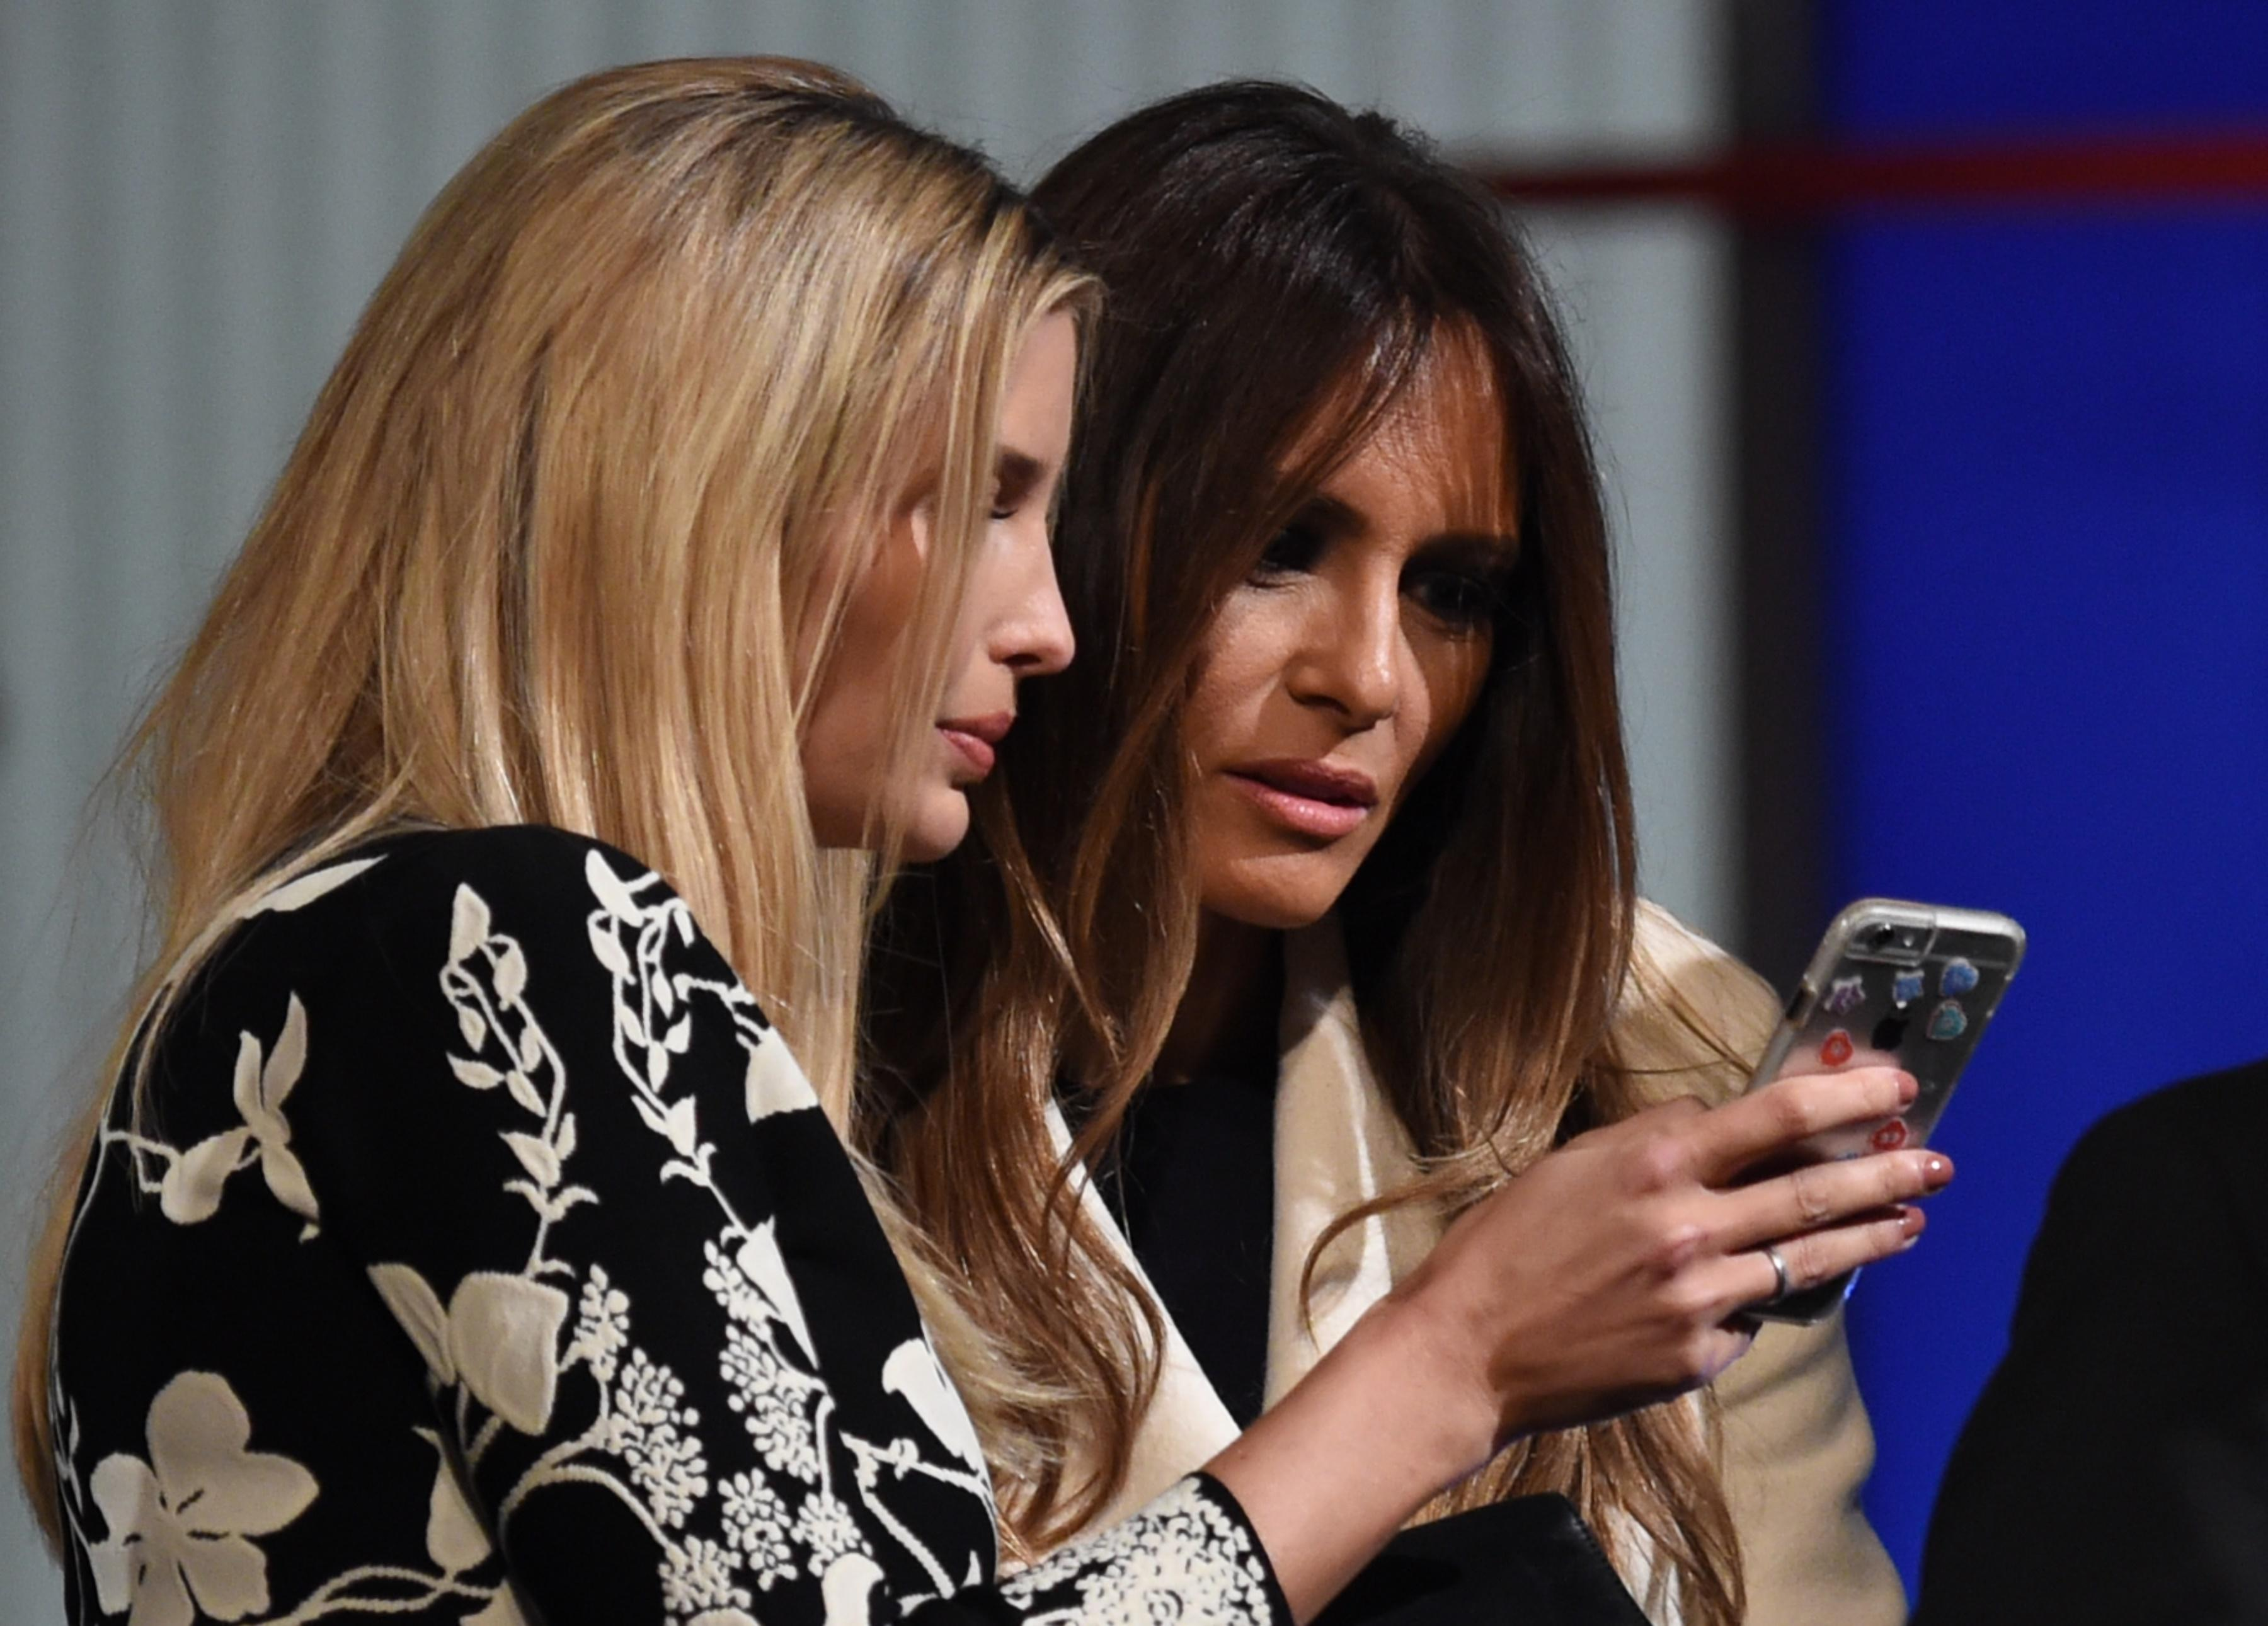 Ivanka and Melania Trump look at a smart phone after the Republican Presidential debate in Charleston, South Carolina on Jan. 14, 2016.